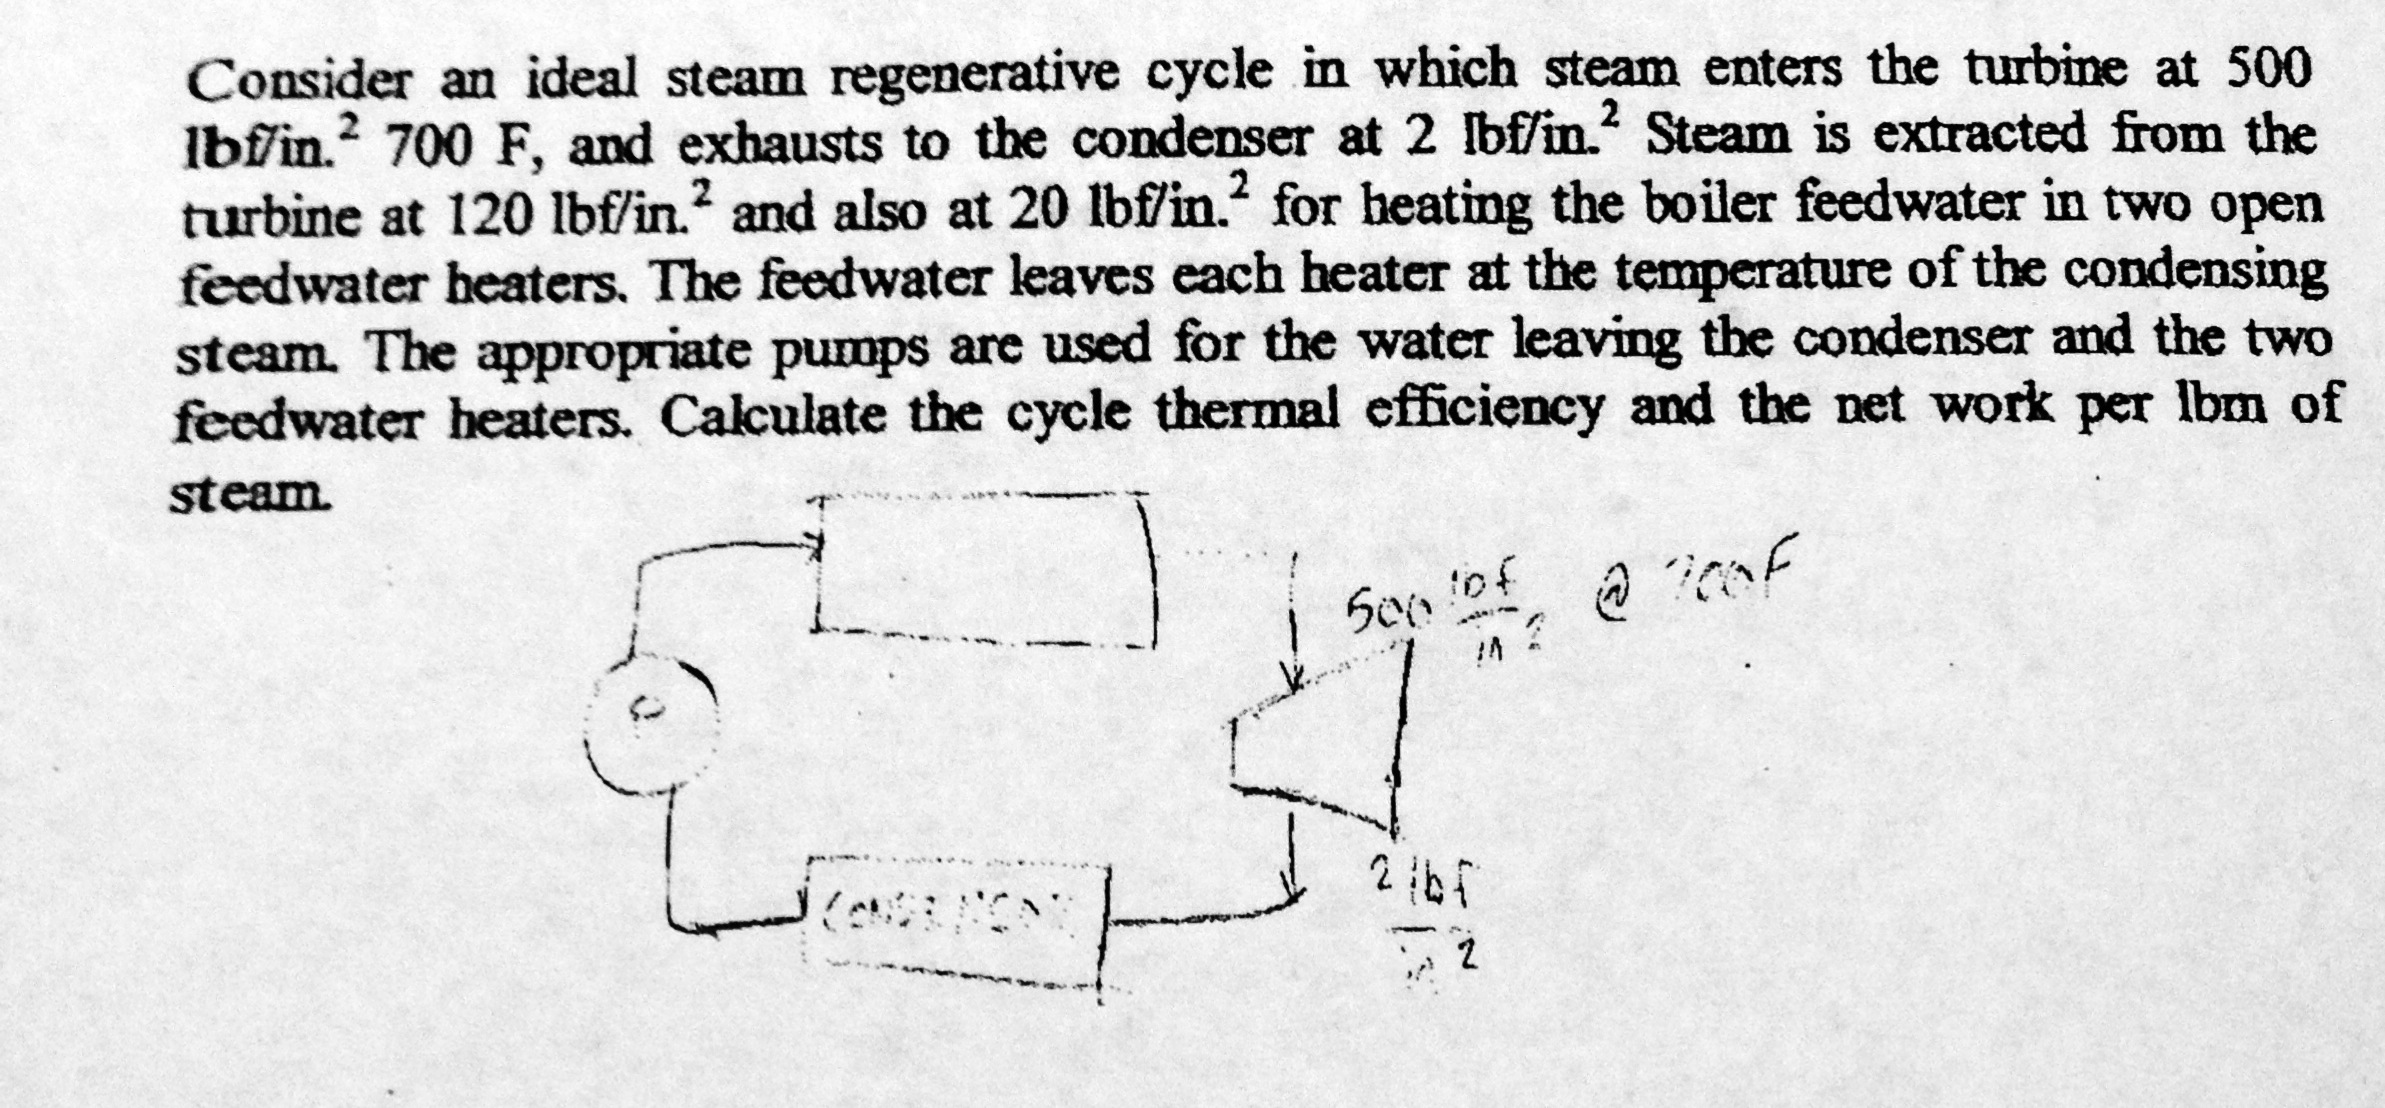 Consider an ideal steam regenerative cycle in whic